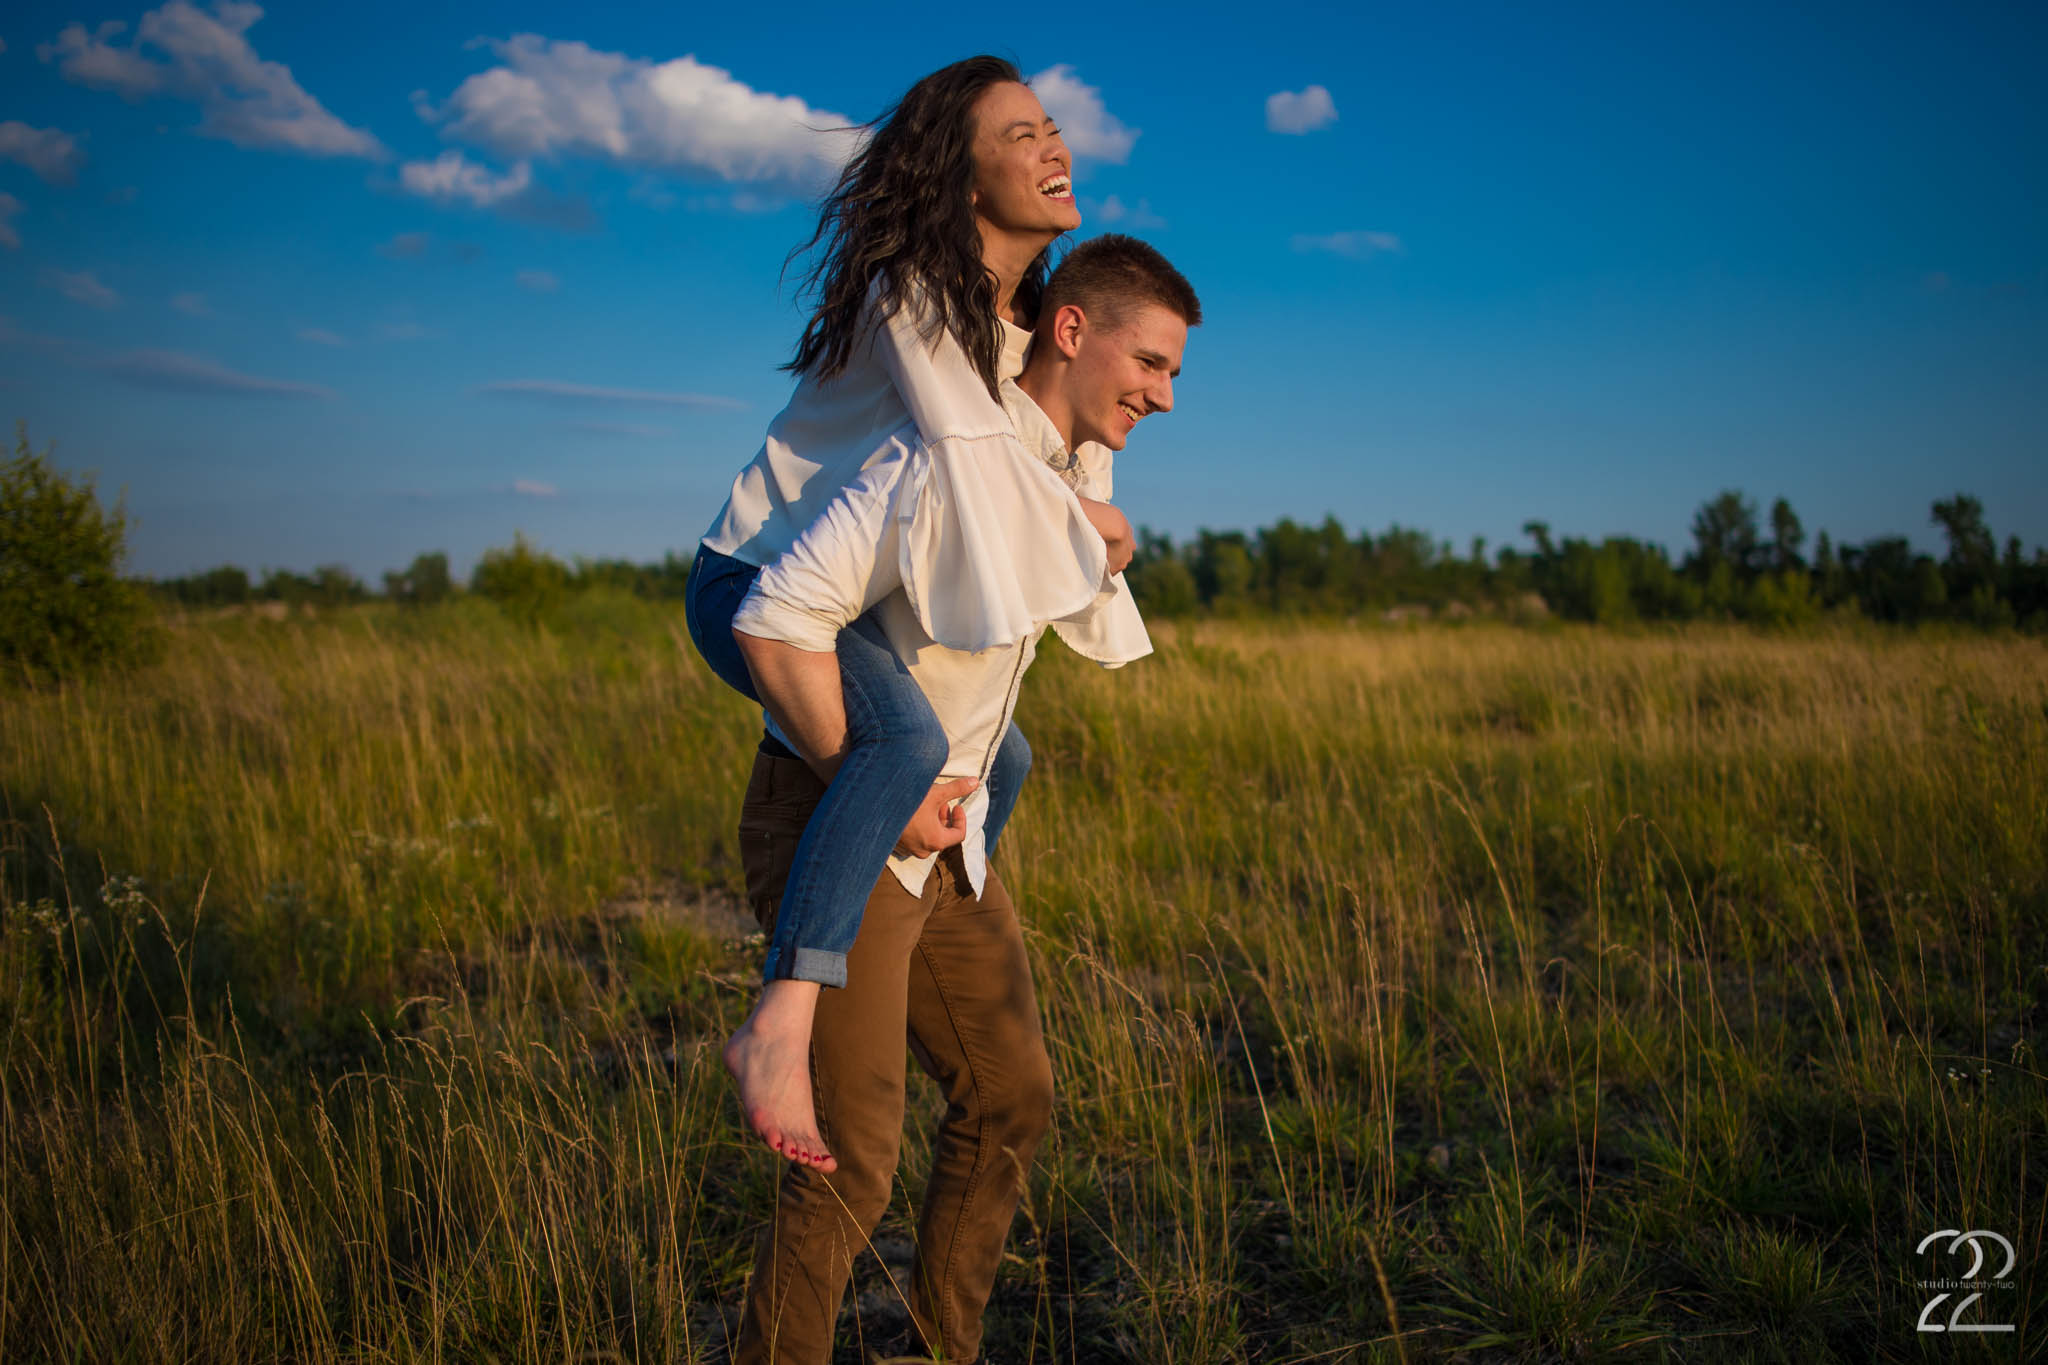 Woman rides piggy back on a man's back, laughing as they run through a field with a blue sky behind them at Oakes Quarry Park by Dayton Wedding Photographer Studio 22 Photography